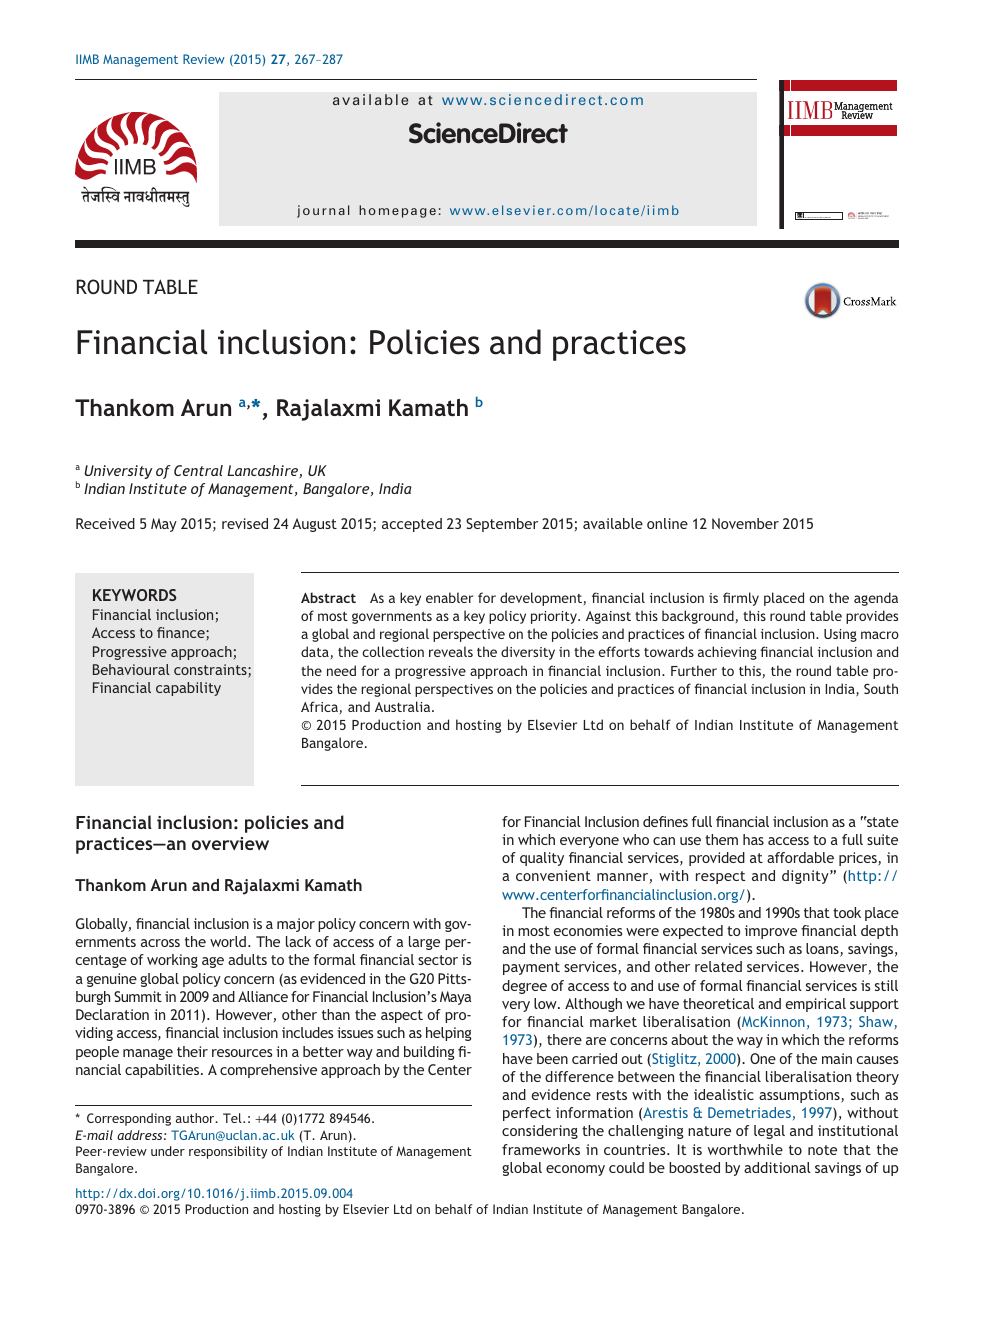 Financial inclusion: Policies and practices – topic of